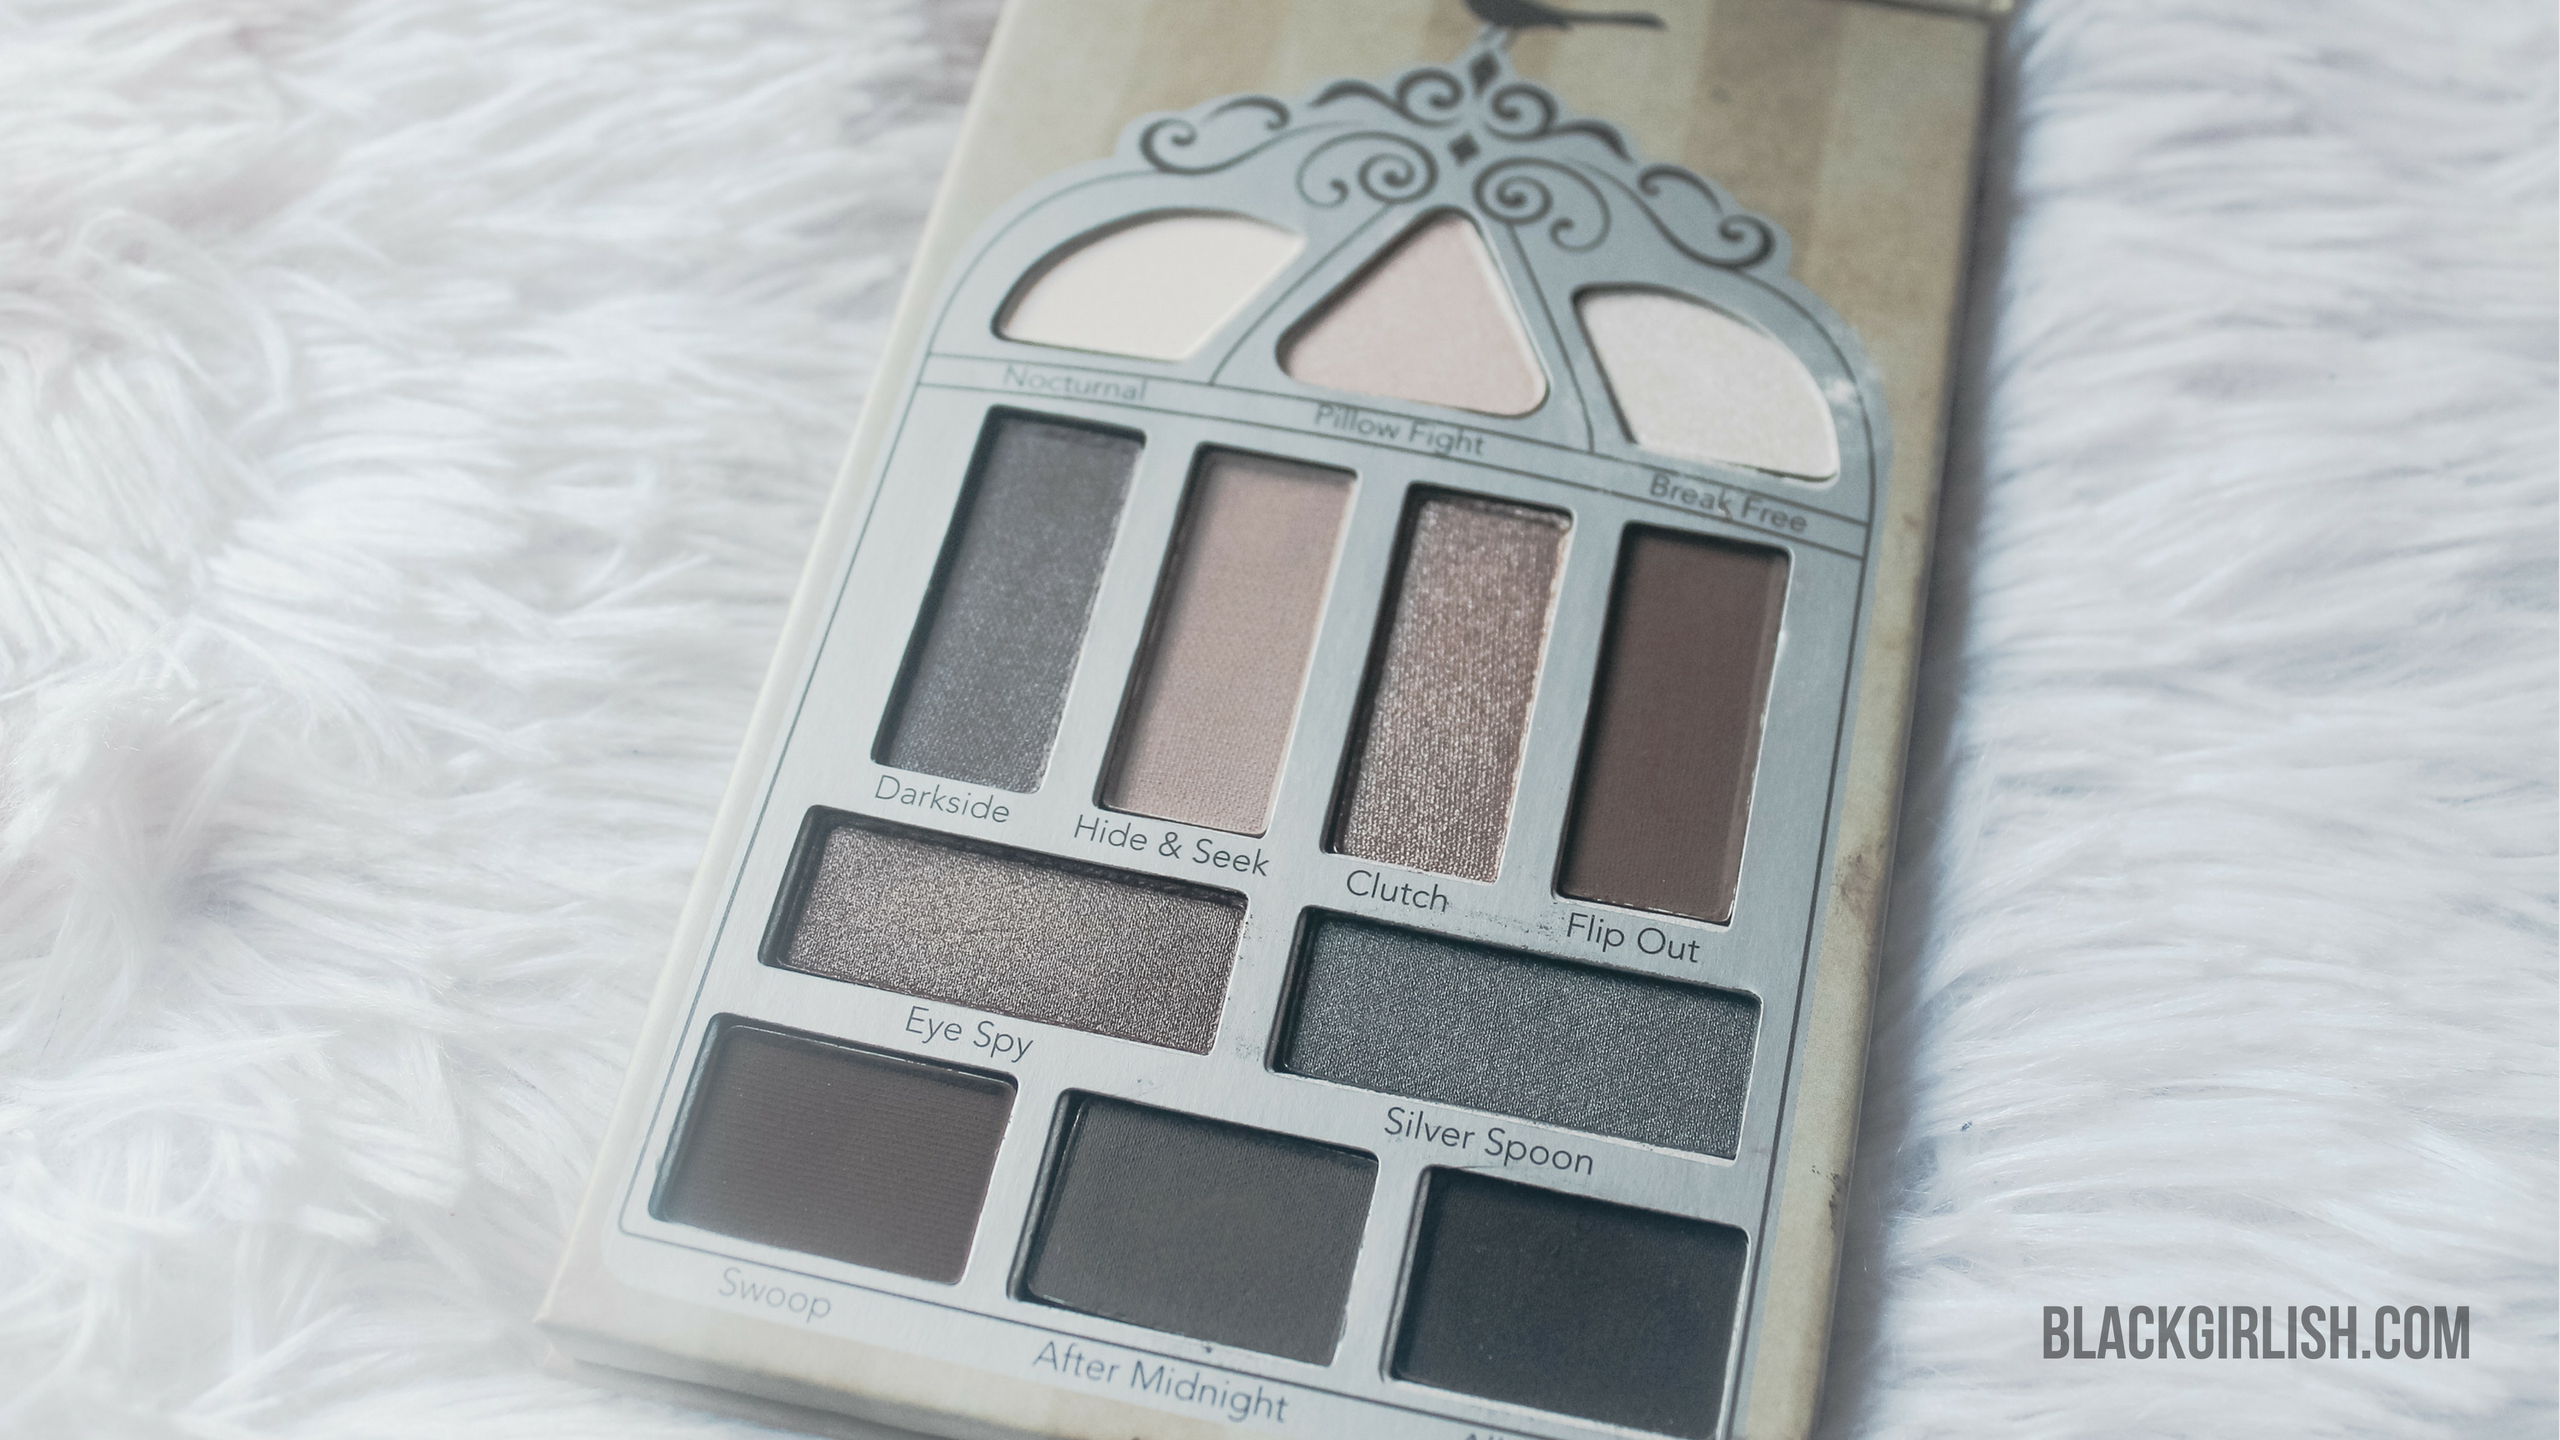 Pretty Vulgar Eyeshadow Palette - BoxyLuxe - blackgirlish.com